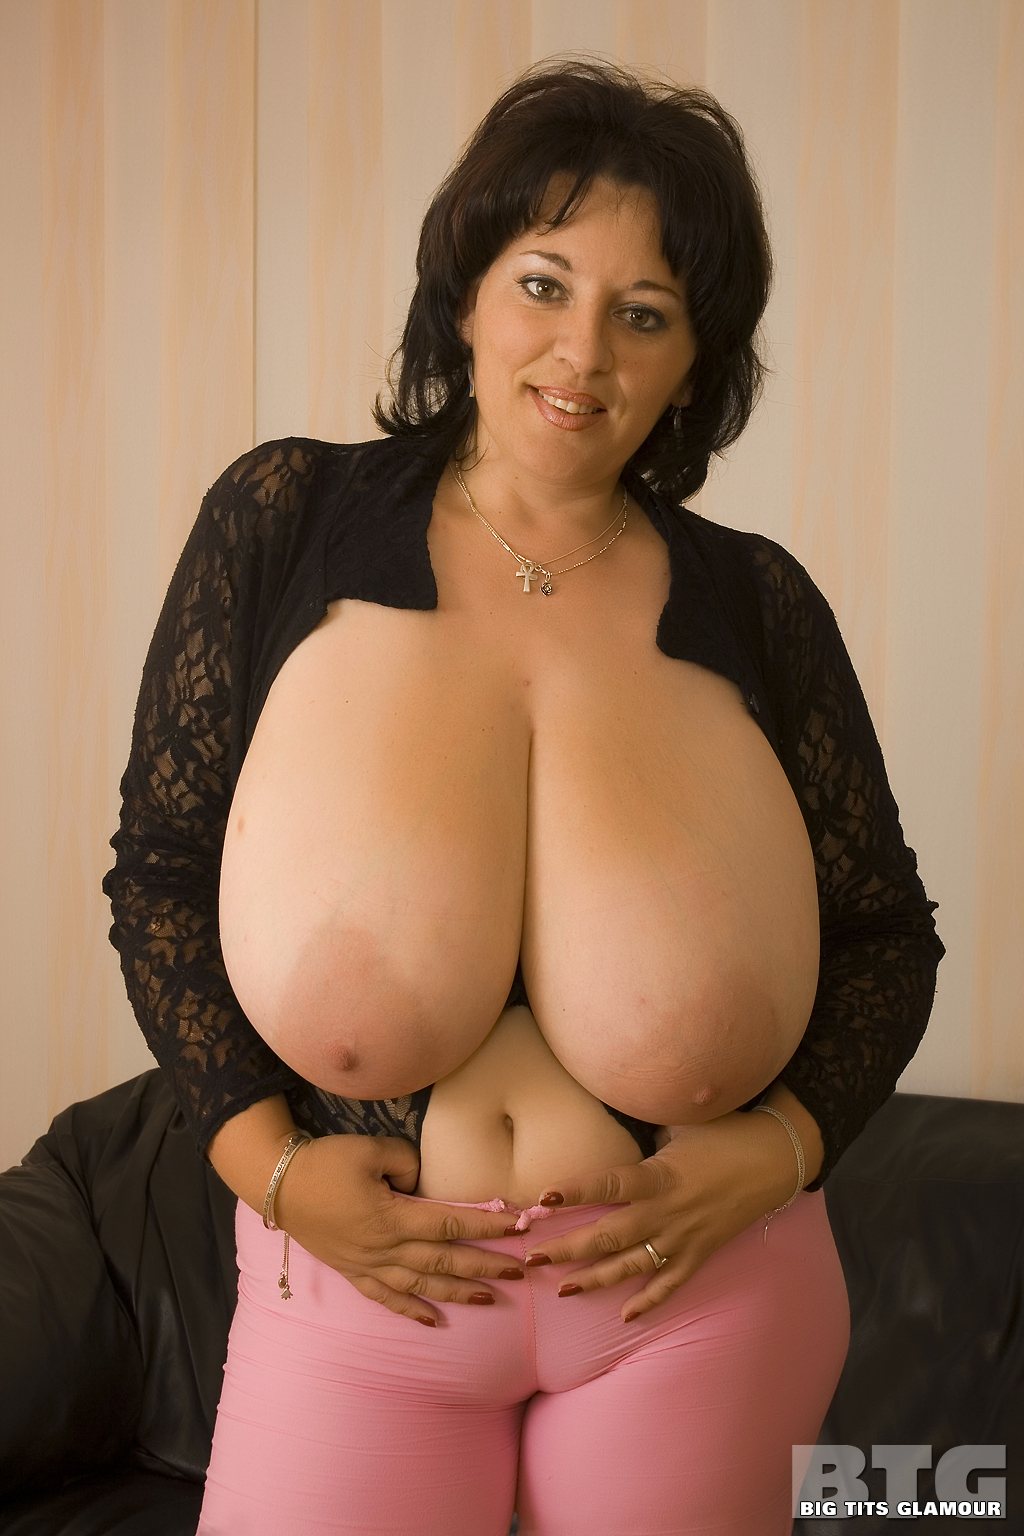 Chatte heavy natural boob she's fucking